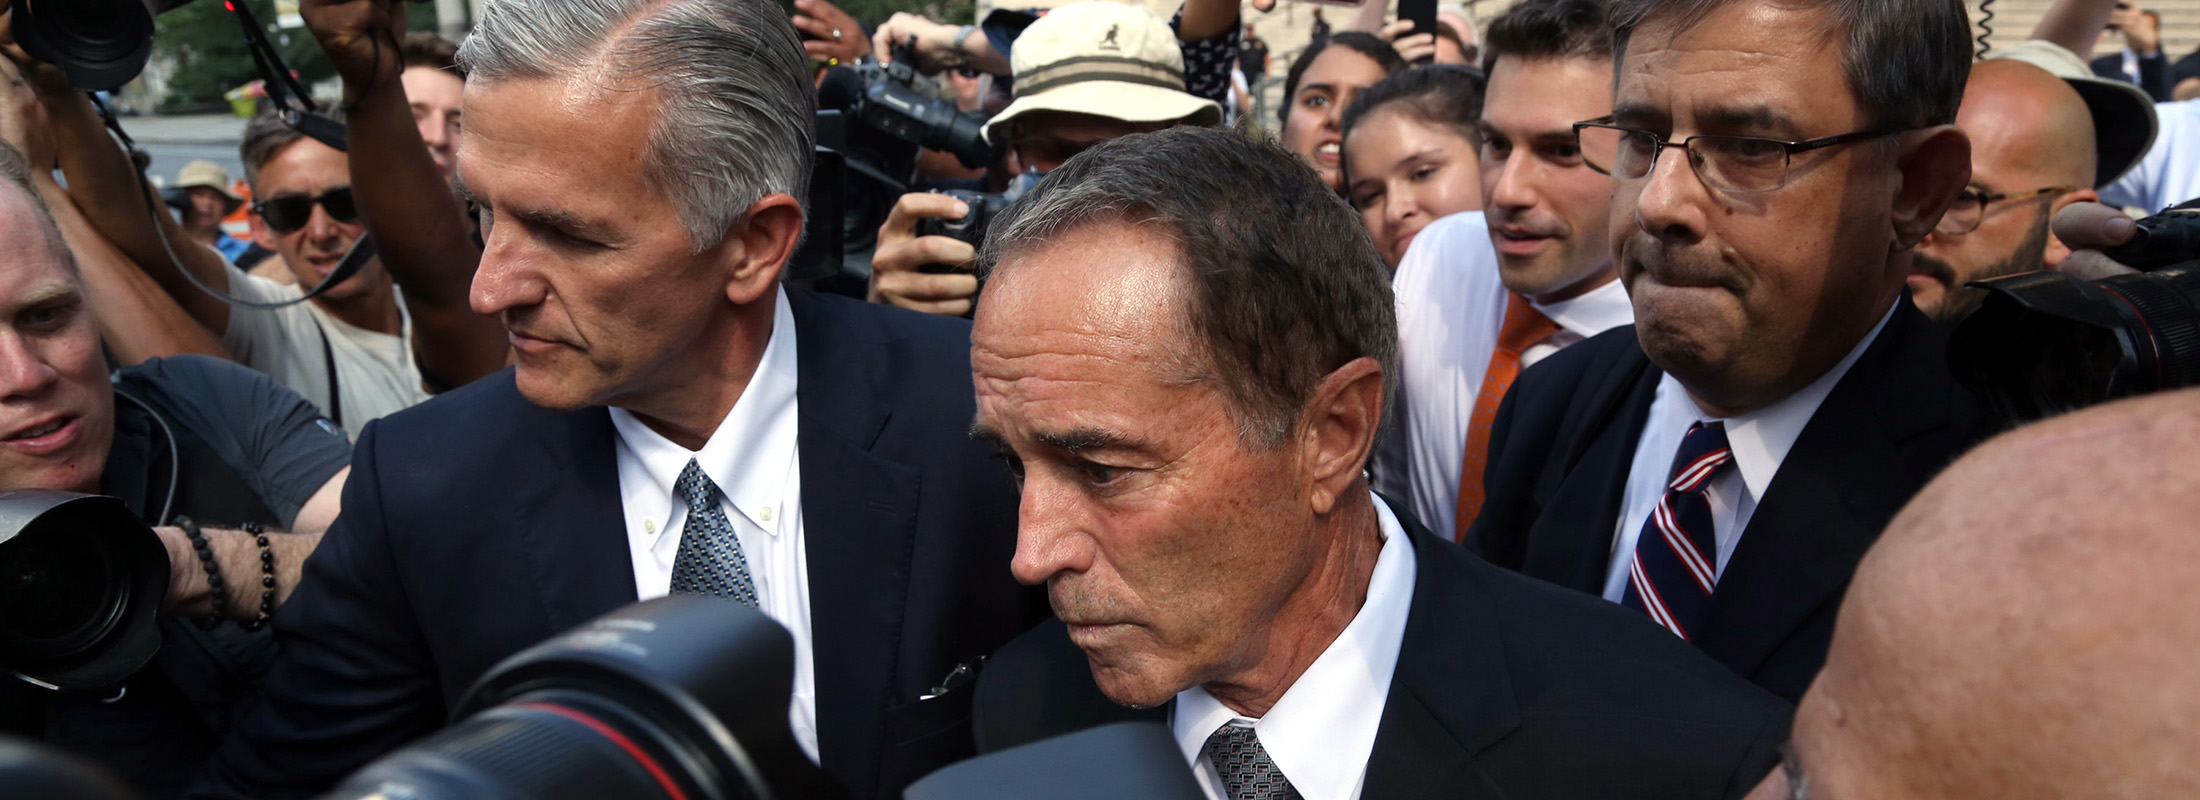 If Rep. Christopher Collins is convicted after a trial, one expert predicts that he could be sentenced to as long as seven to eight years in prison. (Jefferson Siegel/Special to The News)